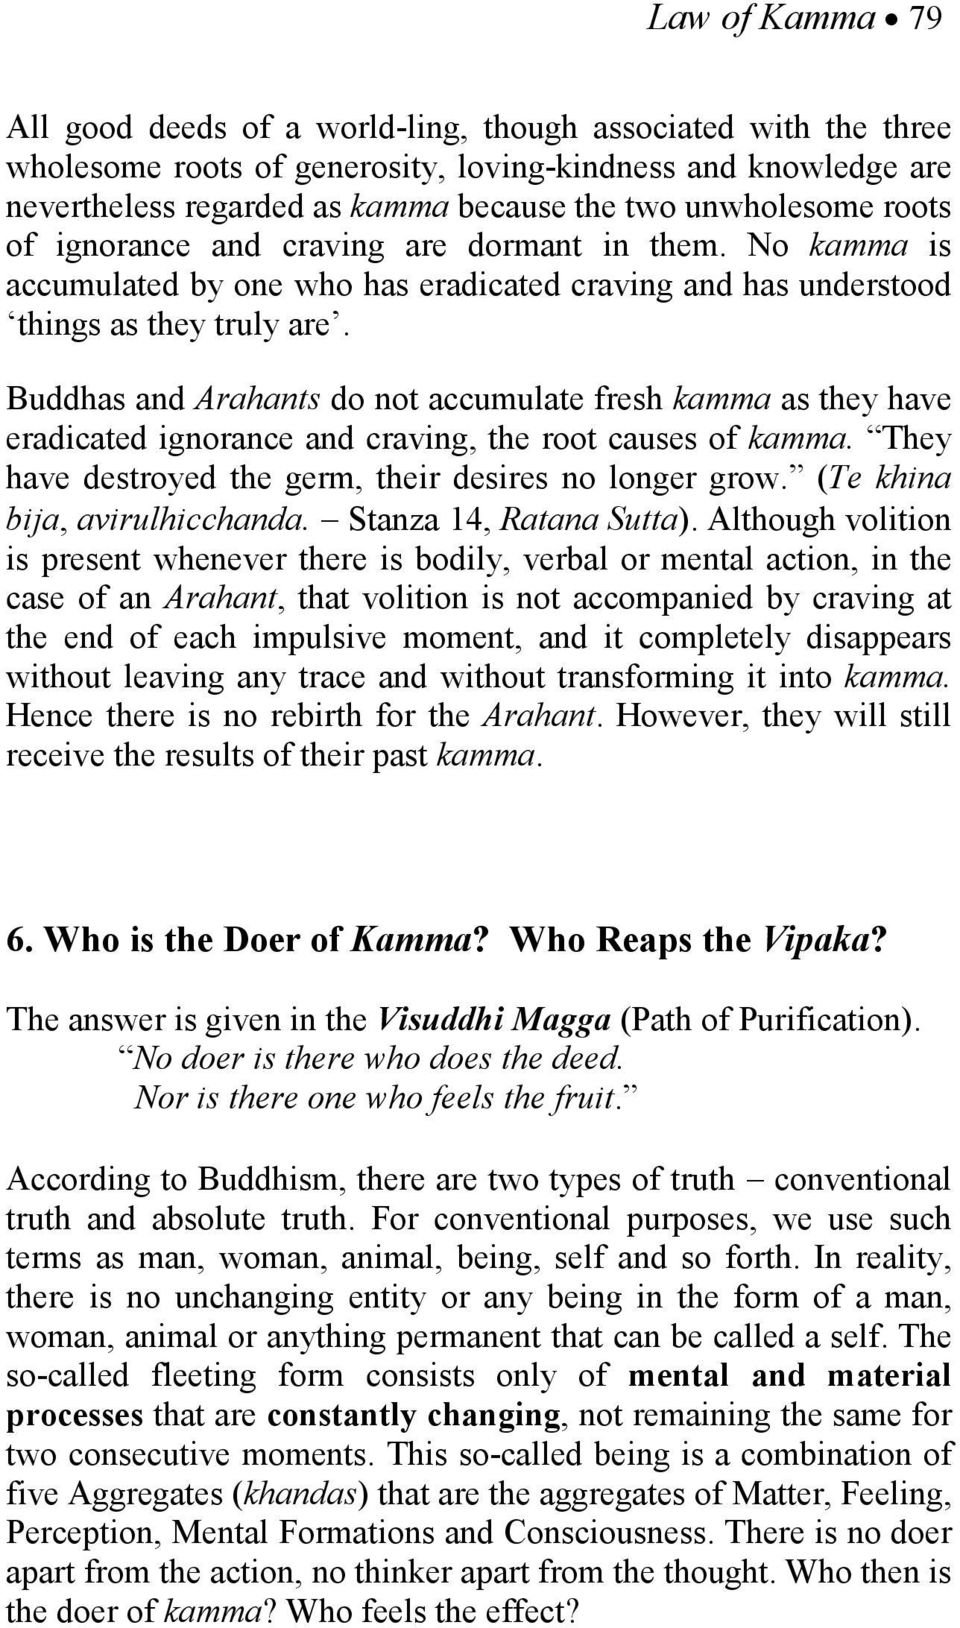 Buddhas and Arahants do not accumulate fresh kamma as they have eradicated ignorance and craving, the root causes of kamma. They have destroyed the germ, their desires no longer grow.